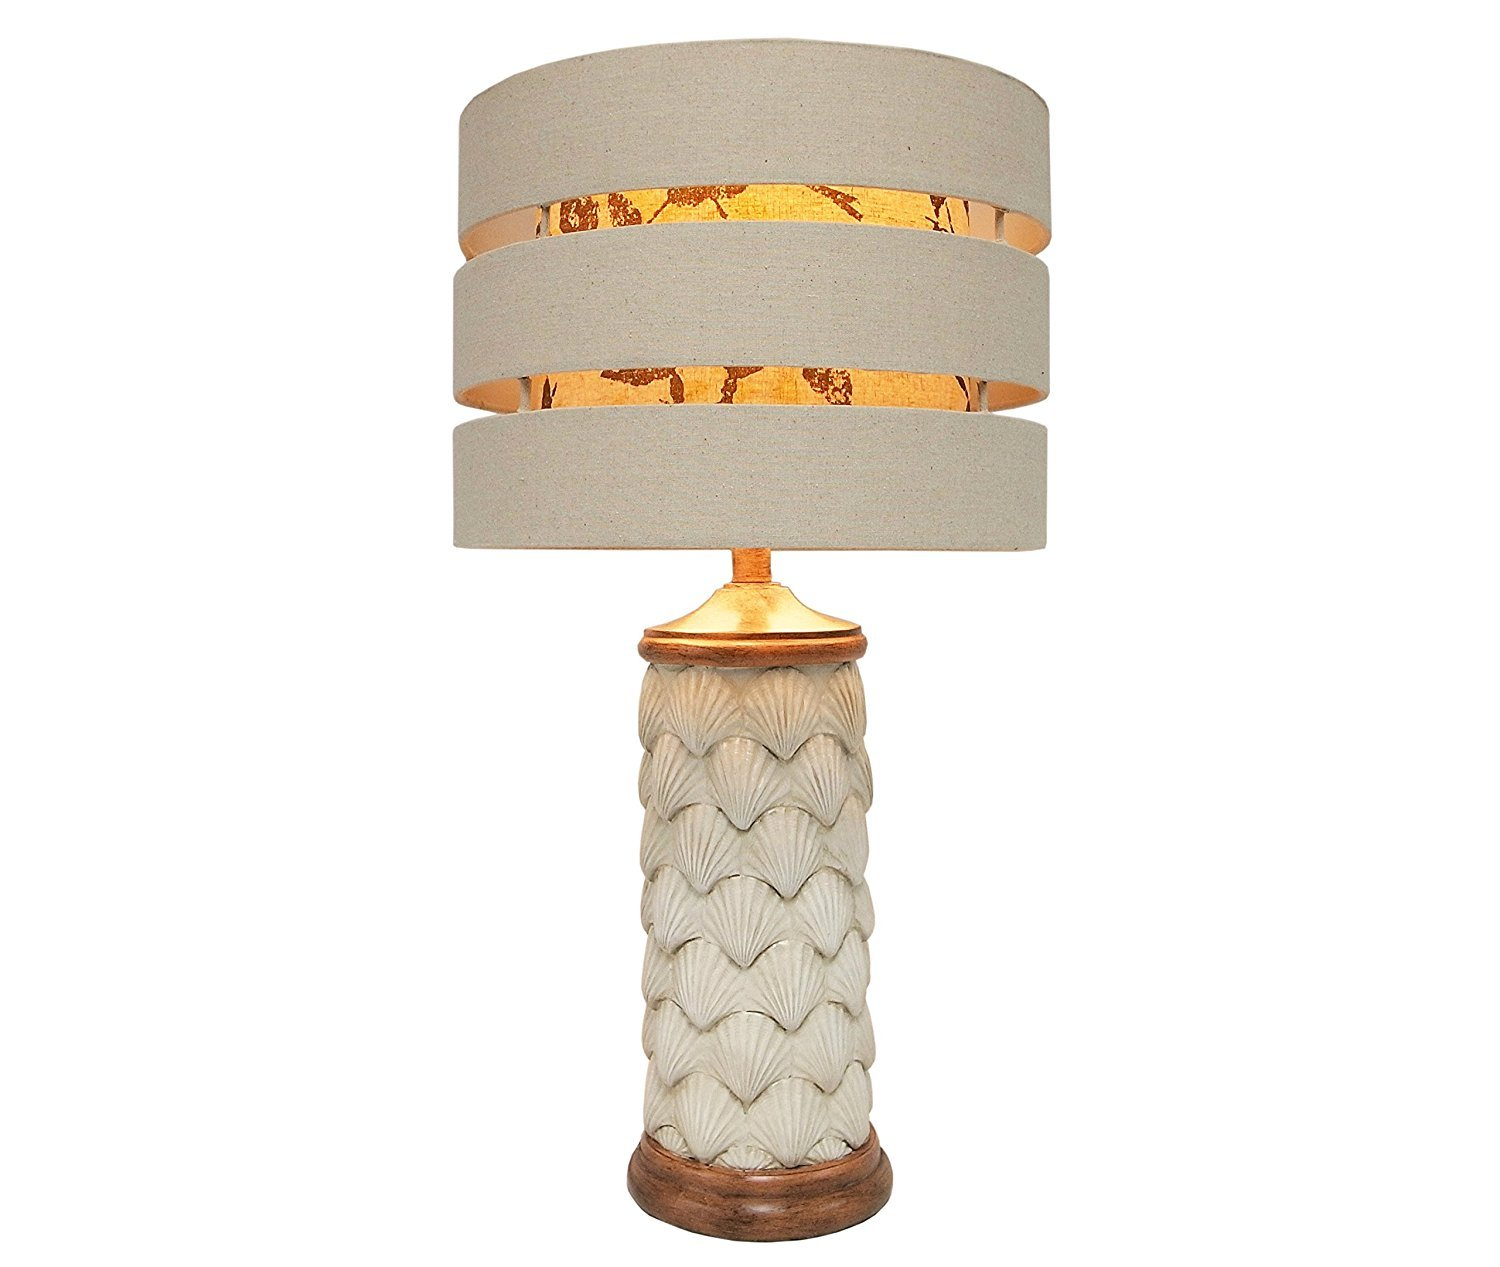 AWST0064 Luxury Antique White Shells Column with double layer fabric lampshade - Table Lamp - Bedroom Bedside Lamp - Desk Lamp - Living Room Lamp - Dorm Room Lamp - Home Deco